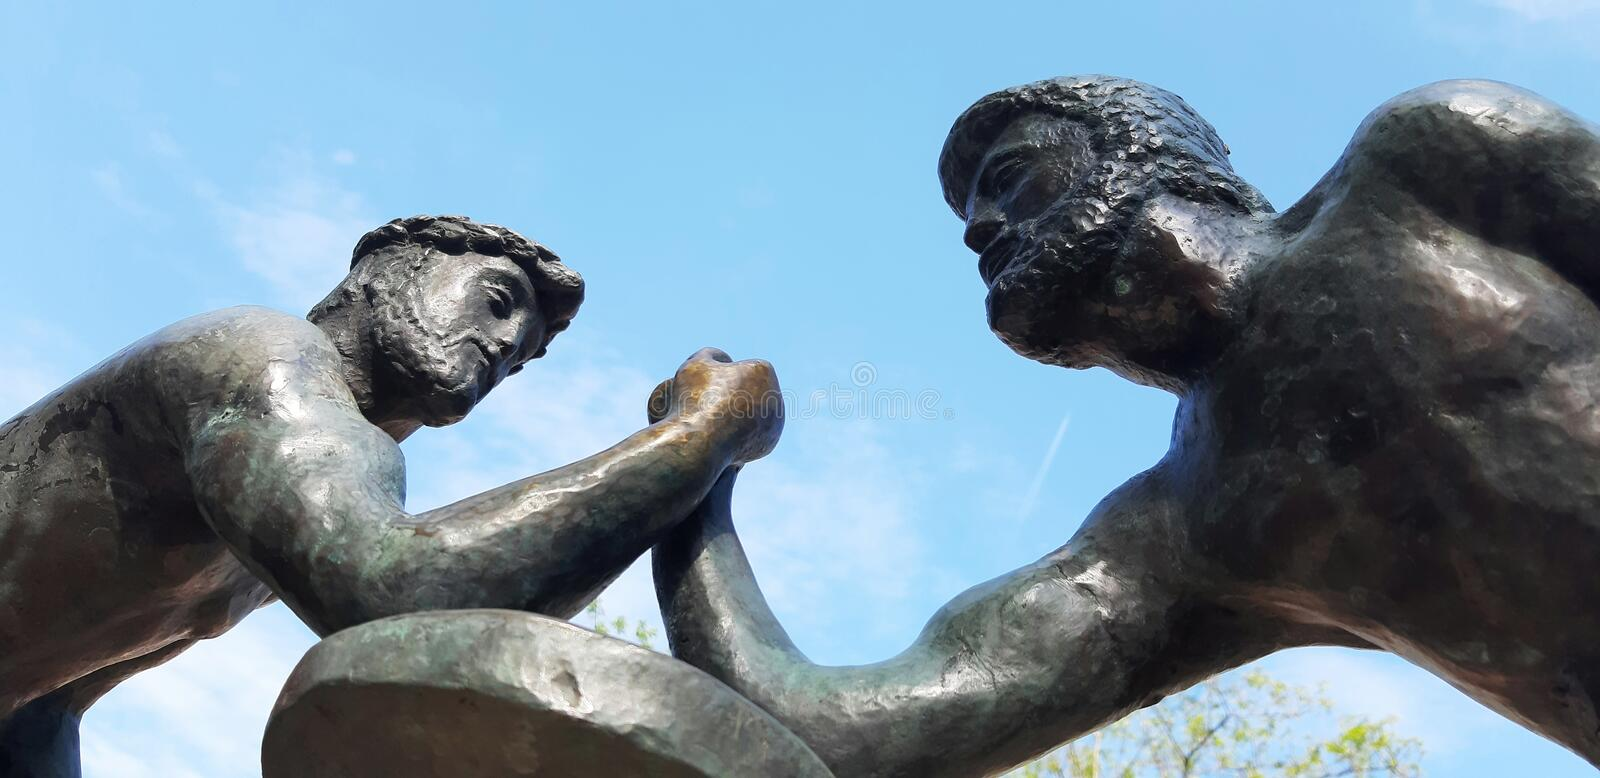 Statue wrestling at the hands of Riviera Park . Russia Sochi 04.28.2019. Statue wrestling at the hands of Riviera Park . Sochi 04.28.2019 royalty free stock photography